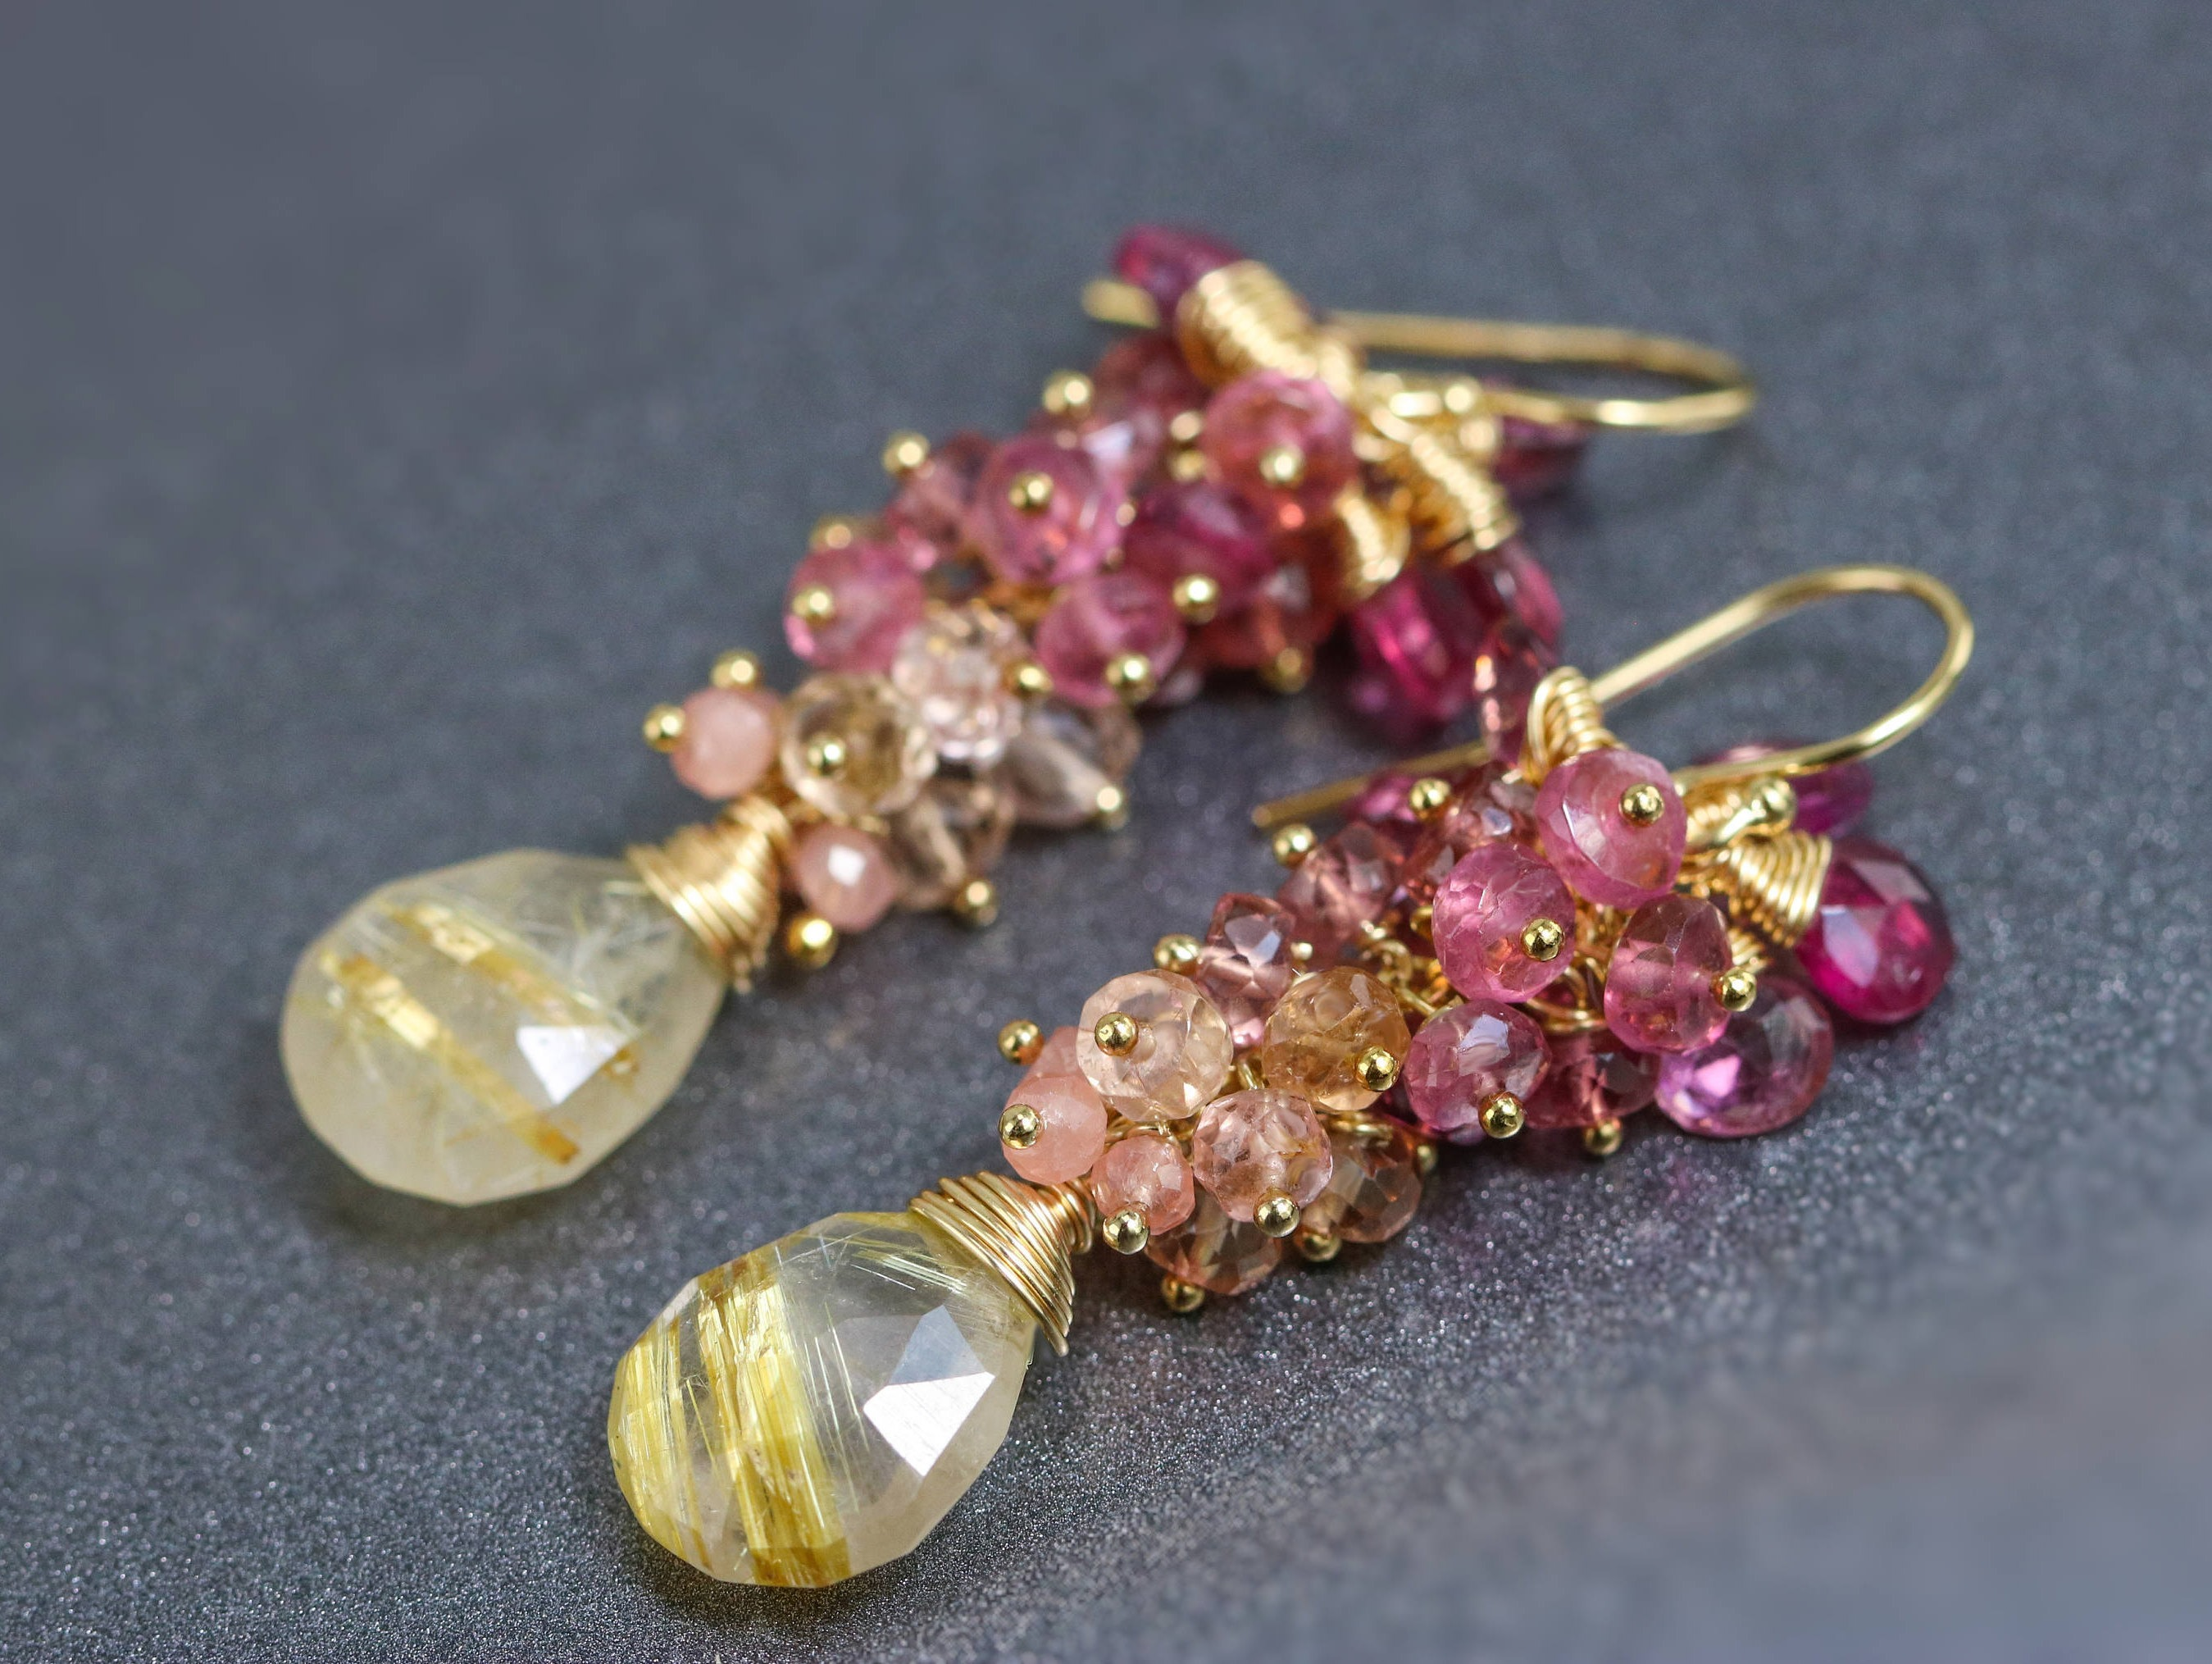 Pink tourmaline and golden rutilated quartz gold filled for Golden rutilated quartz jewelry